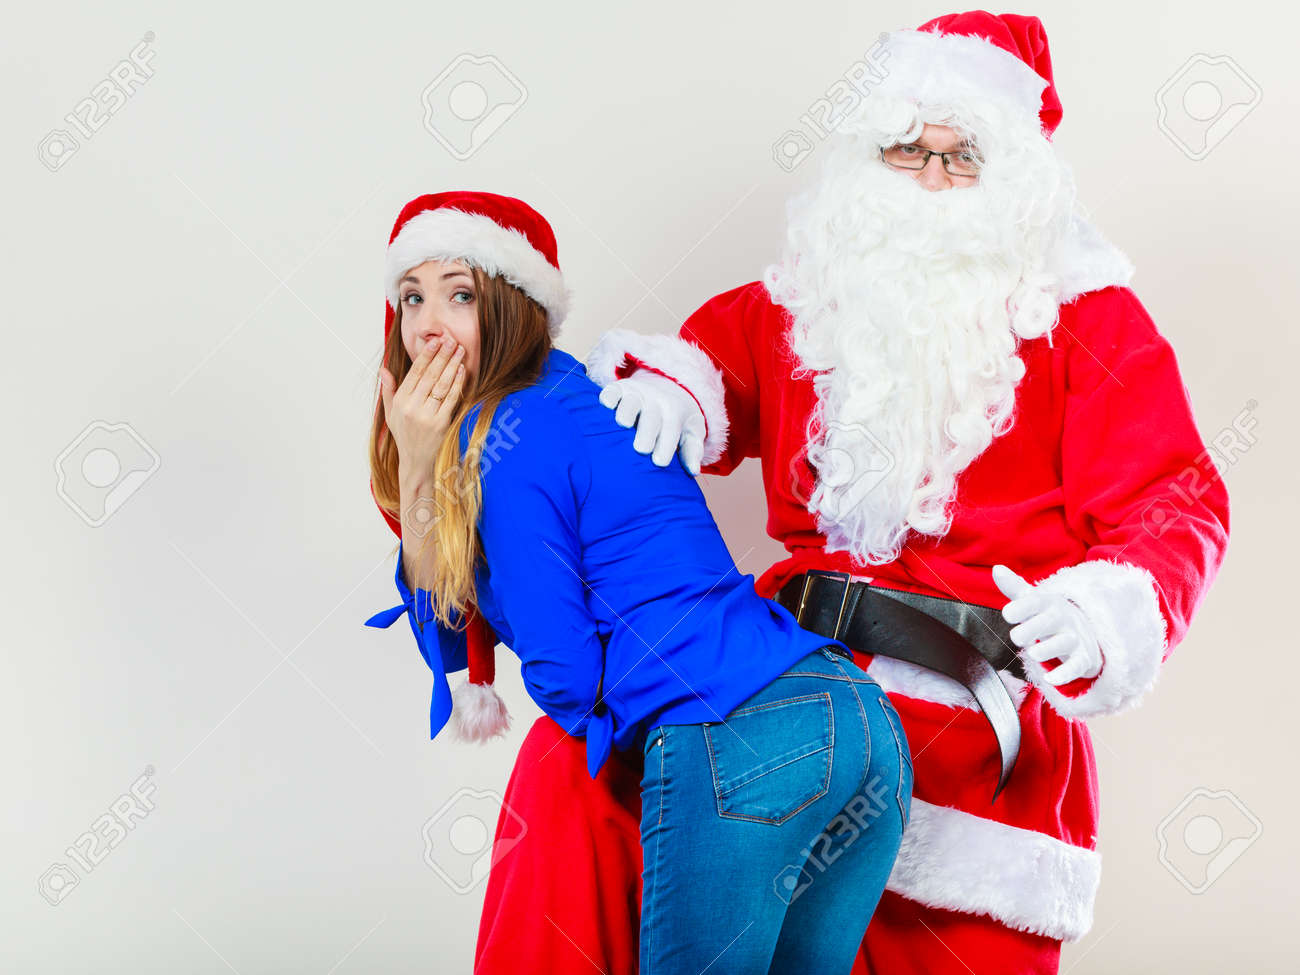 Christmas Holiday Concept Man Wearing Santa Claus Costume Spanking